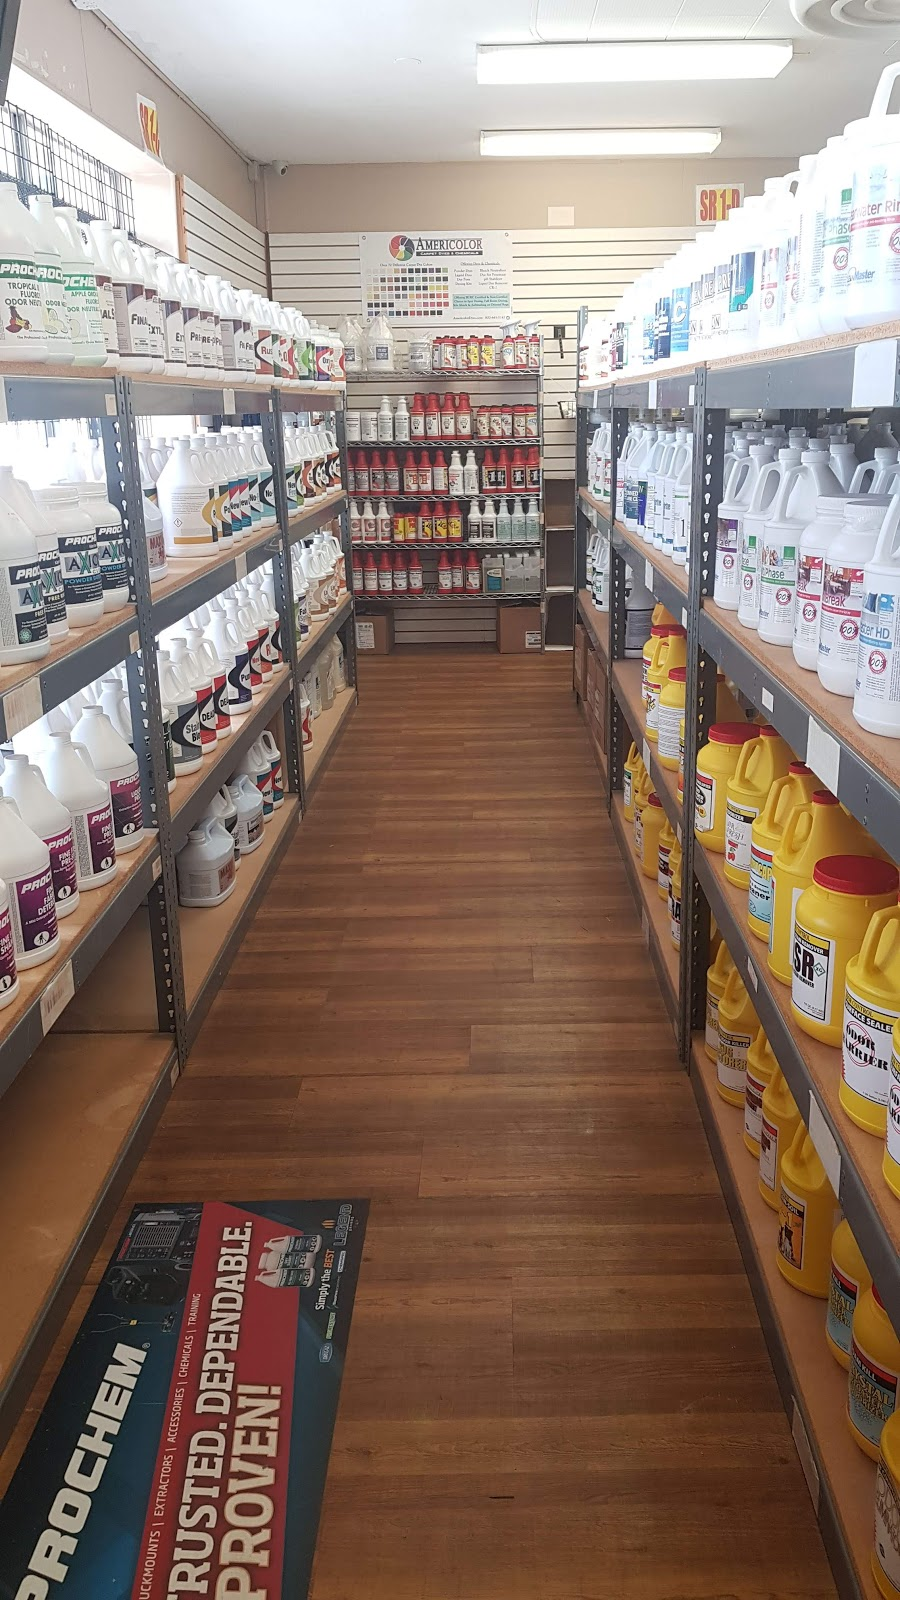 Crown Cleaning Supplies & Equipment - point of interest  | Photo 1 of 2 | Address: 1035 W Amelia St, Orlando, FL 32805, USA | Phone: (407) 648-7004